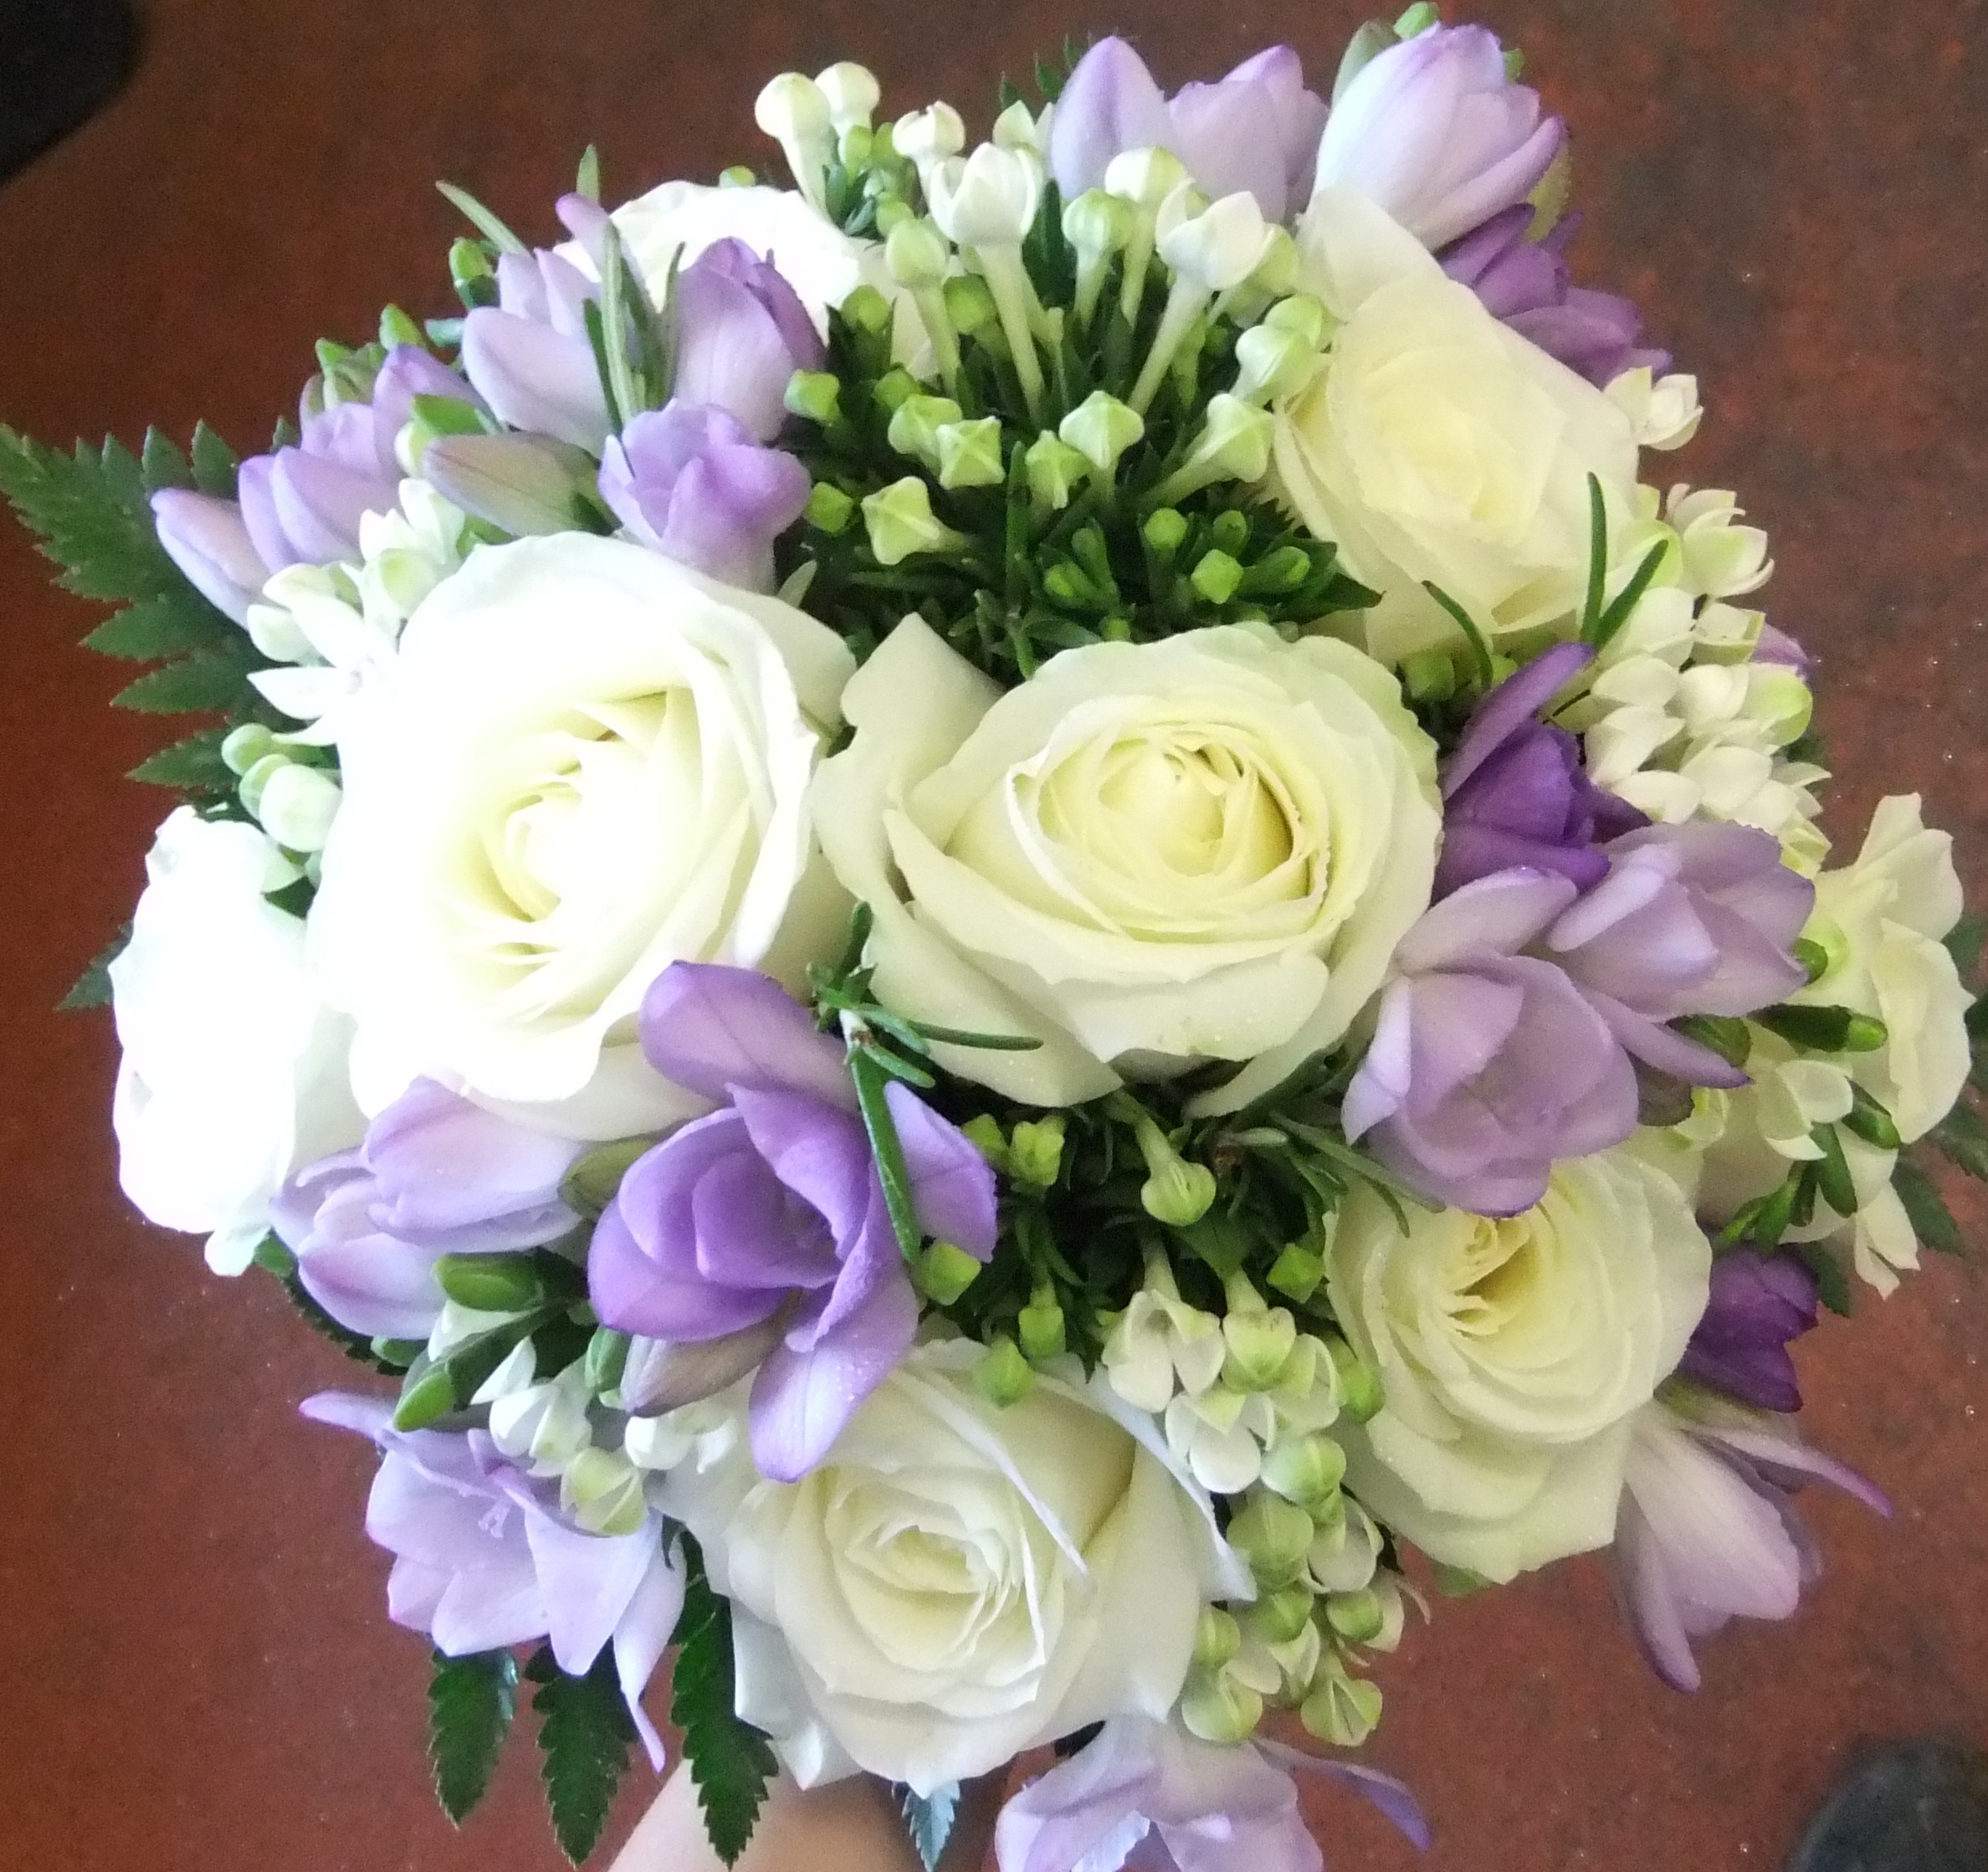 Pics Of Flowers For Weddings: Flowers For Weddings